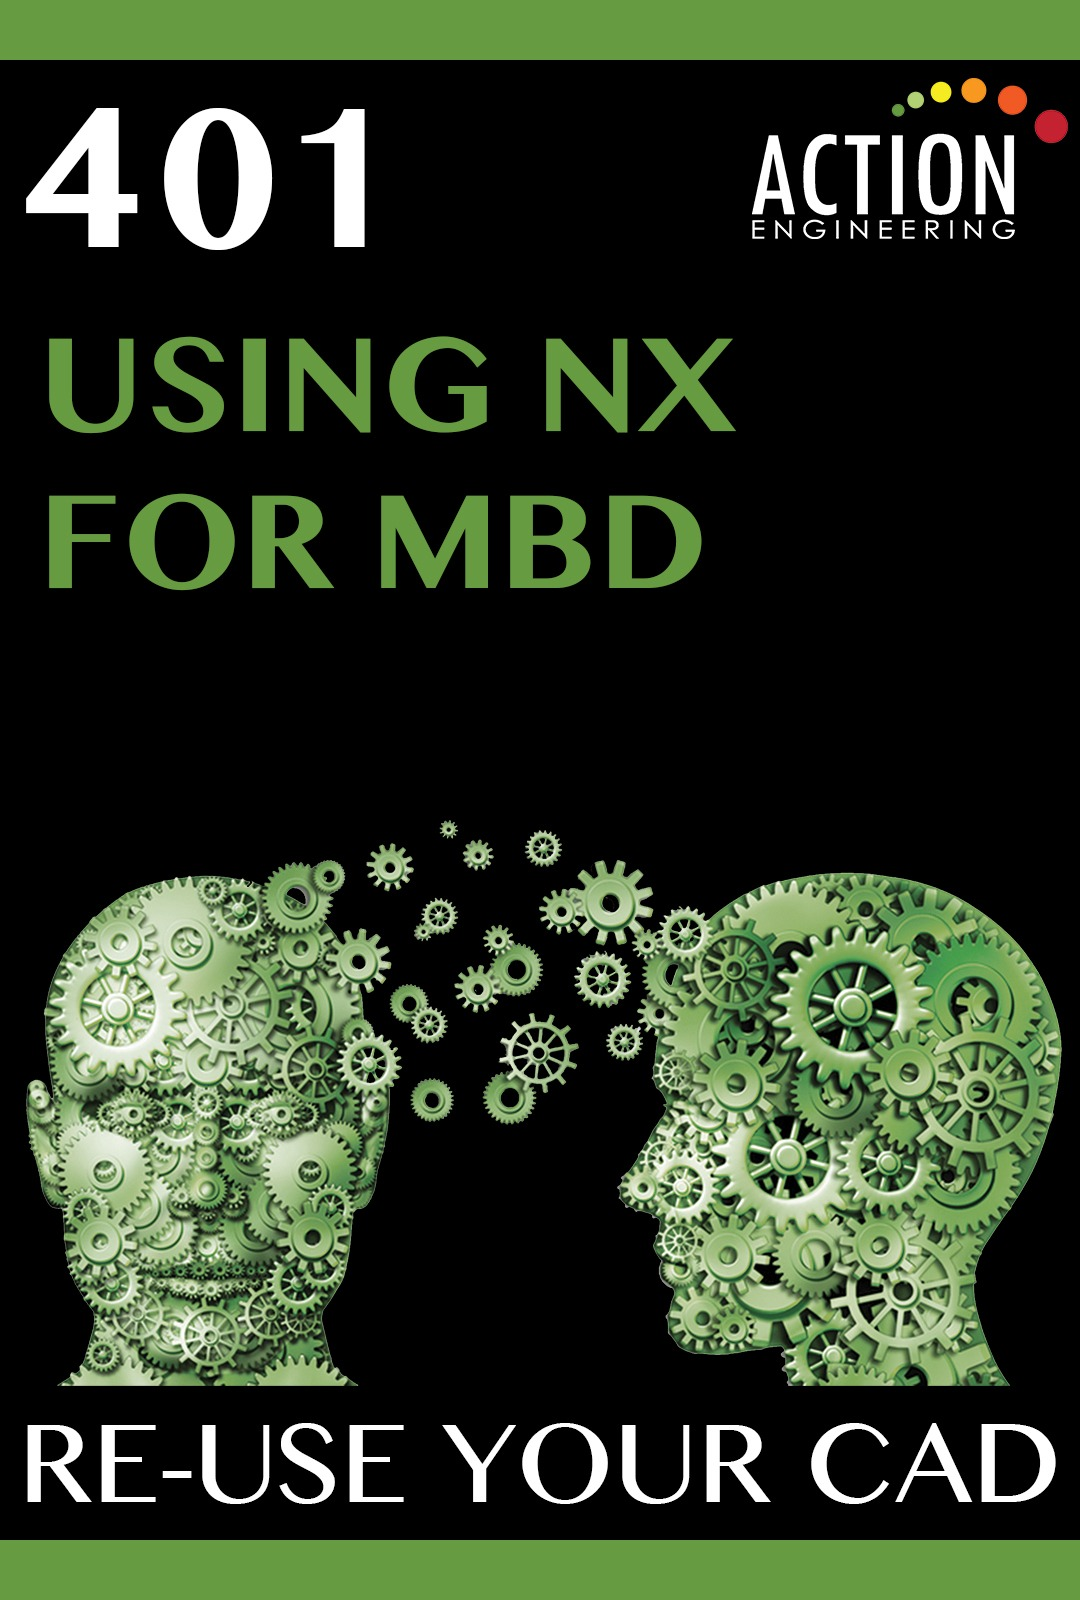 Action Engineering Course 401: Using NX for MBD